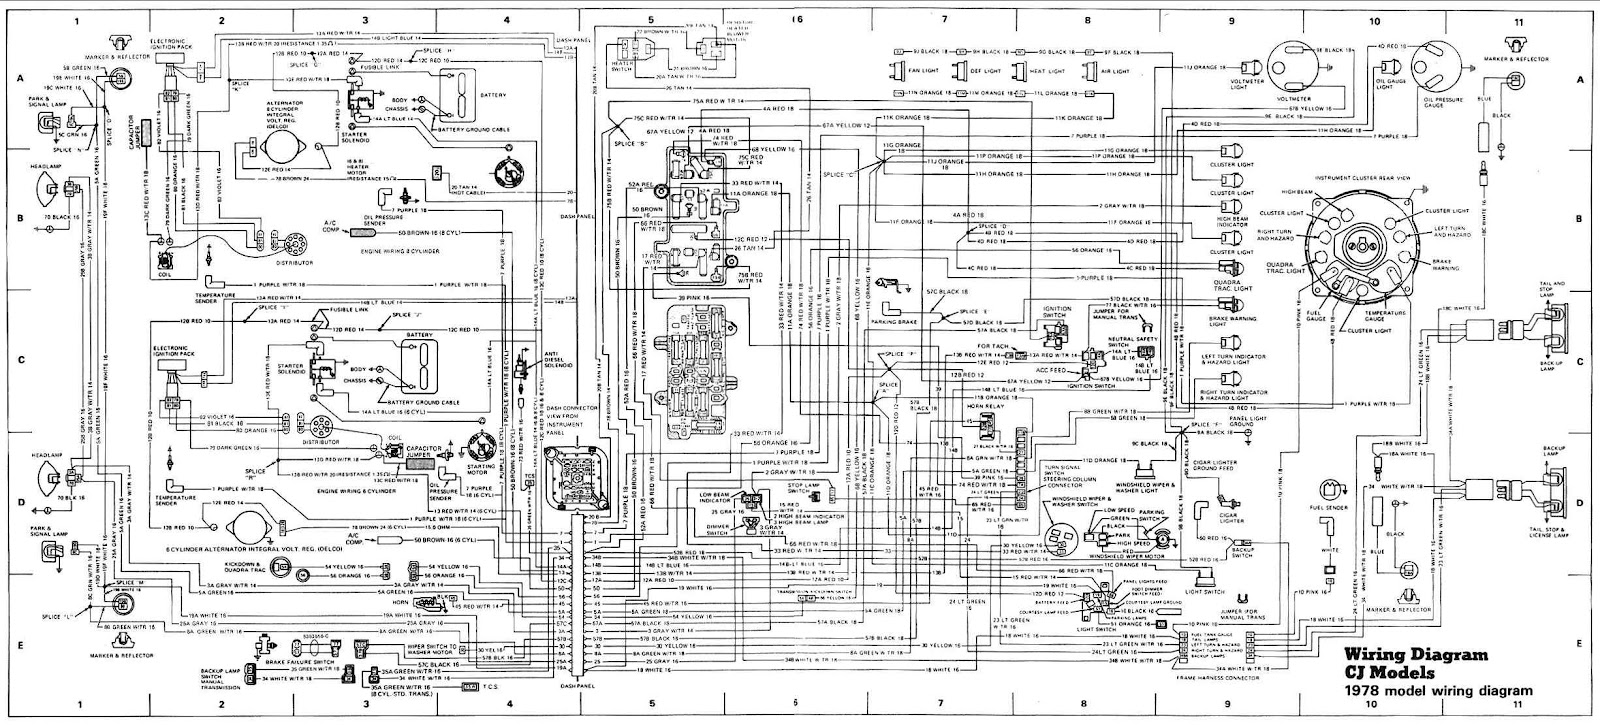 Jeep CJ Models 1978 Complete Electrical Wiring Diagram jeep stereo wiring diagram jeep free wiring diagrams 2003 jeep liberty radio wiring diagram at sewacar.co